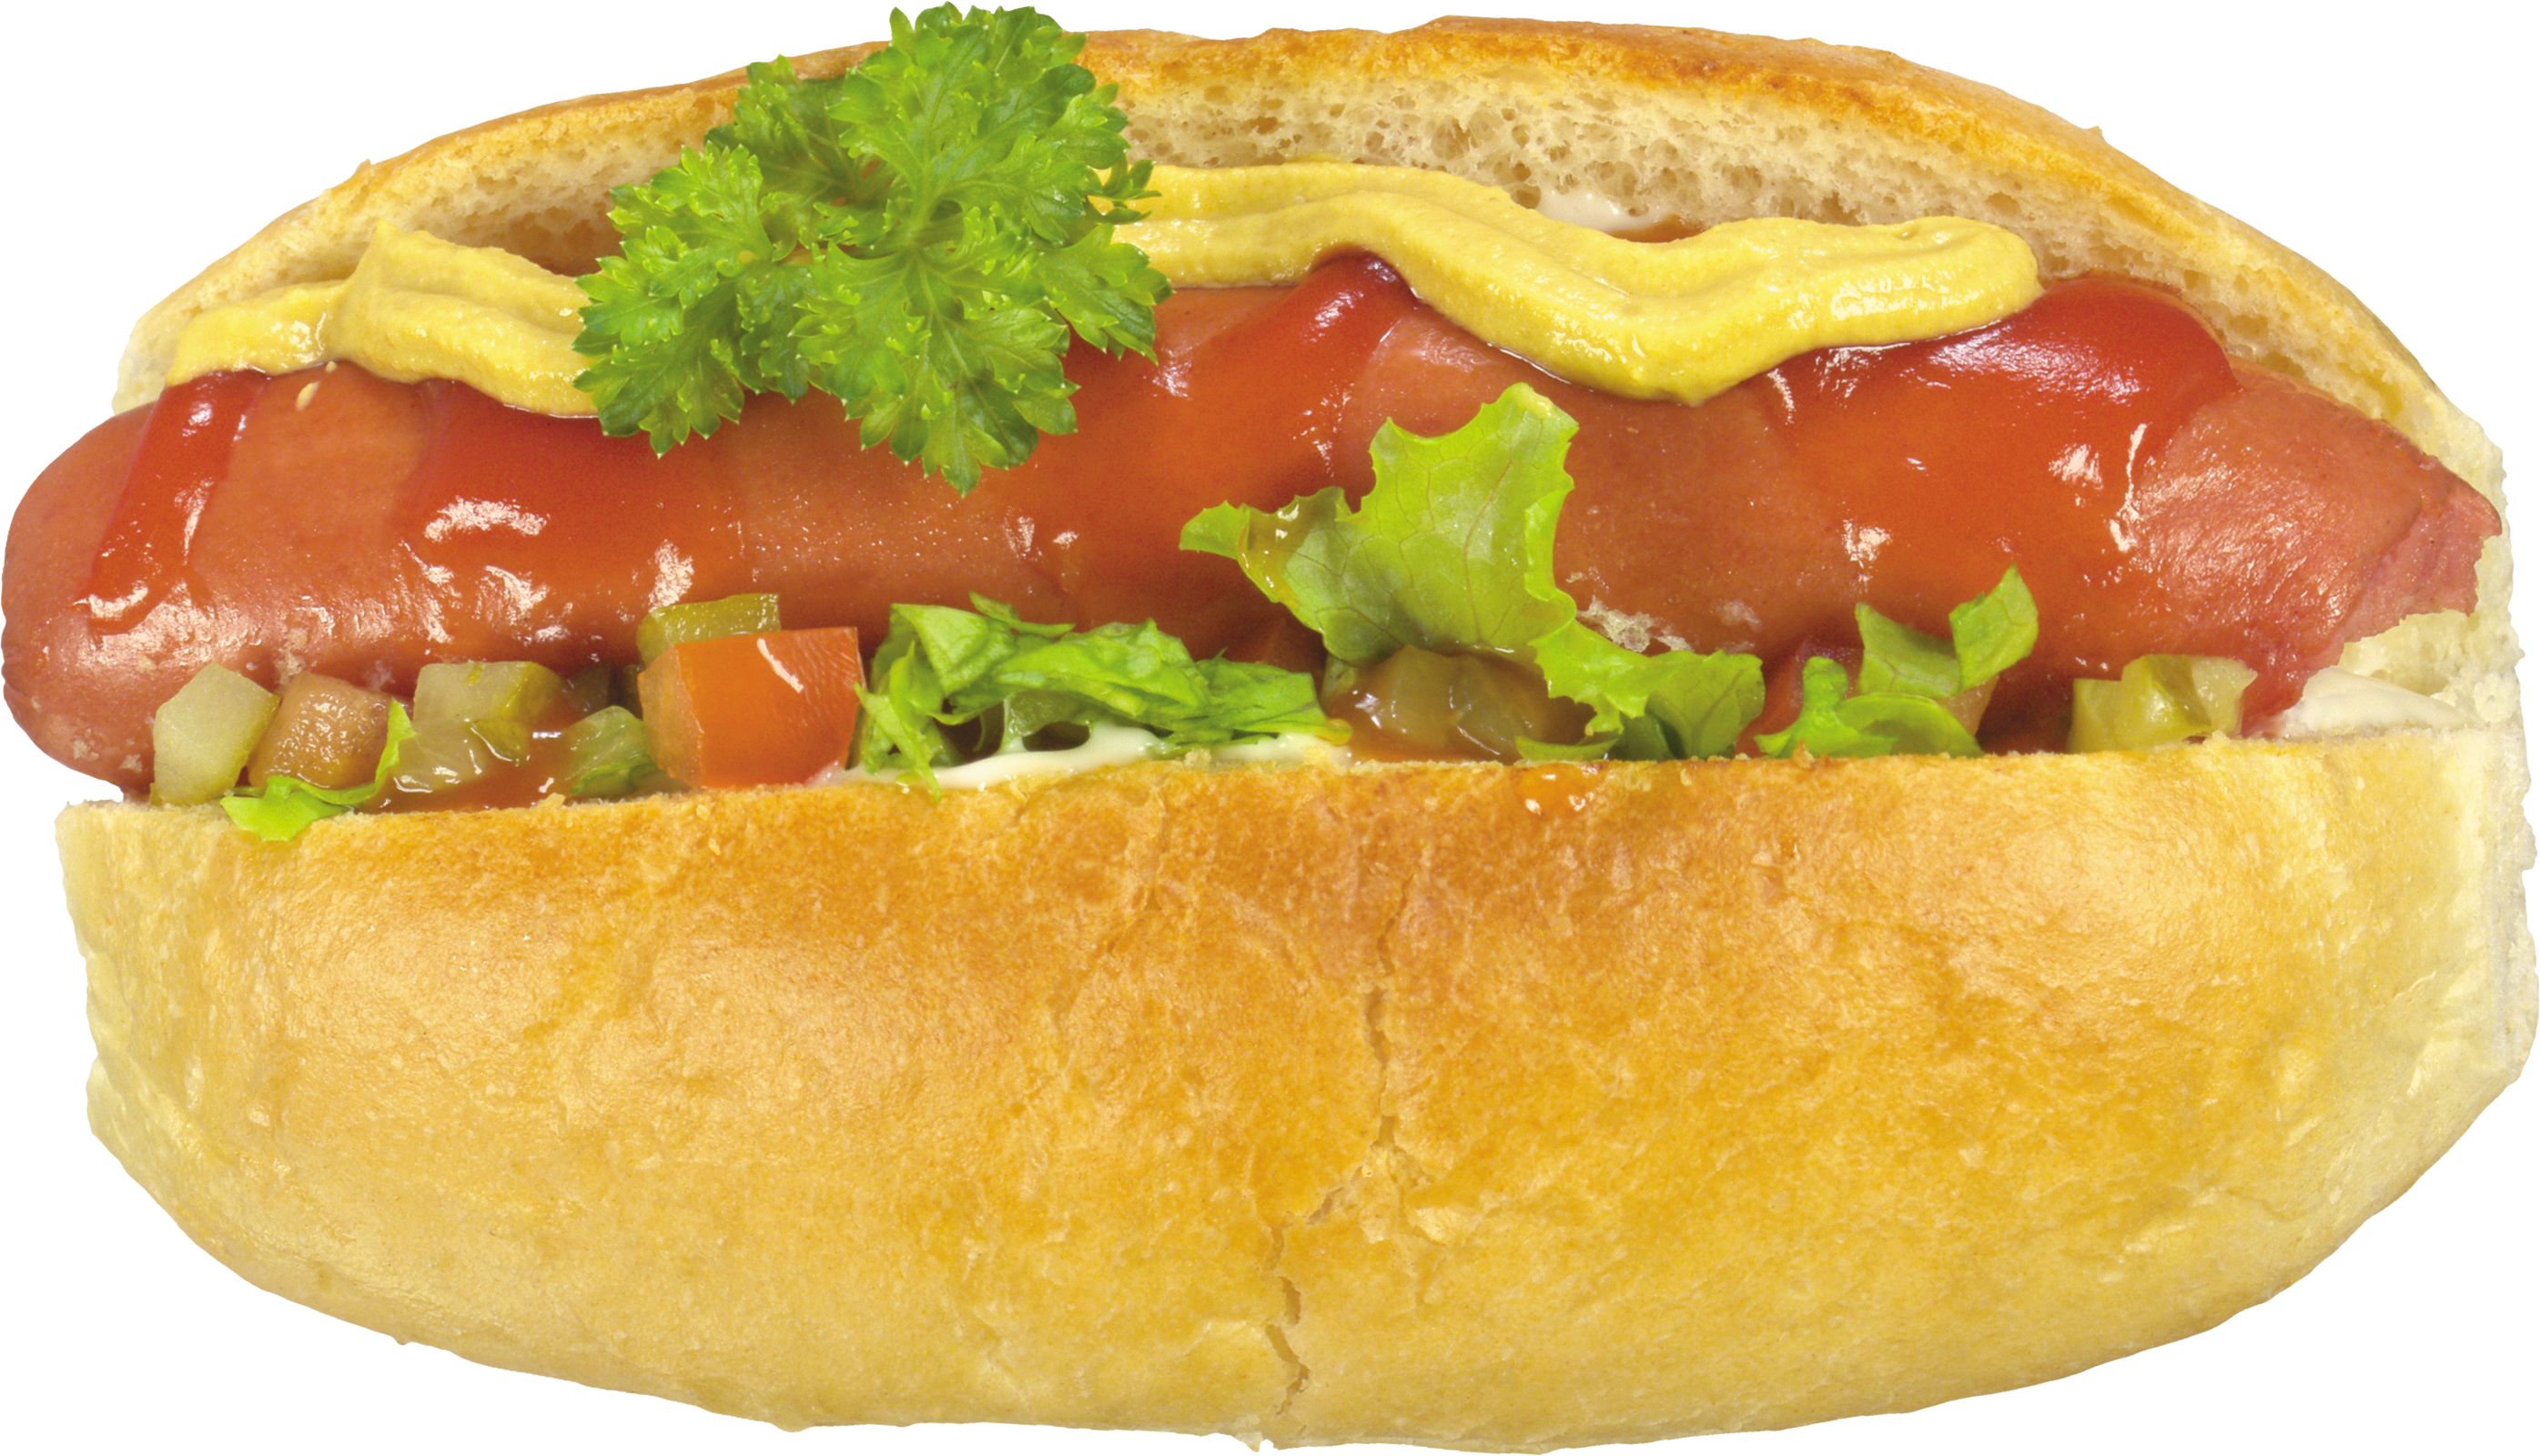 Hot Dog Png Image Food Food Png Hot Dogs